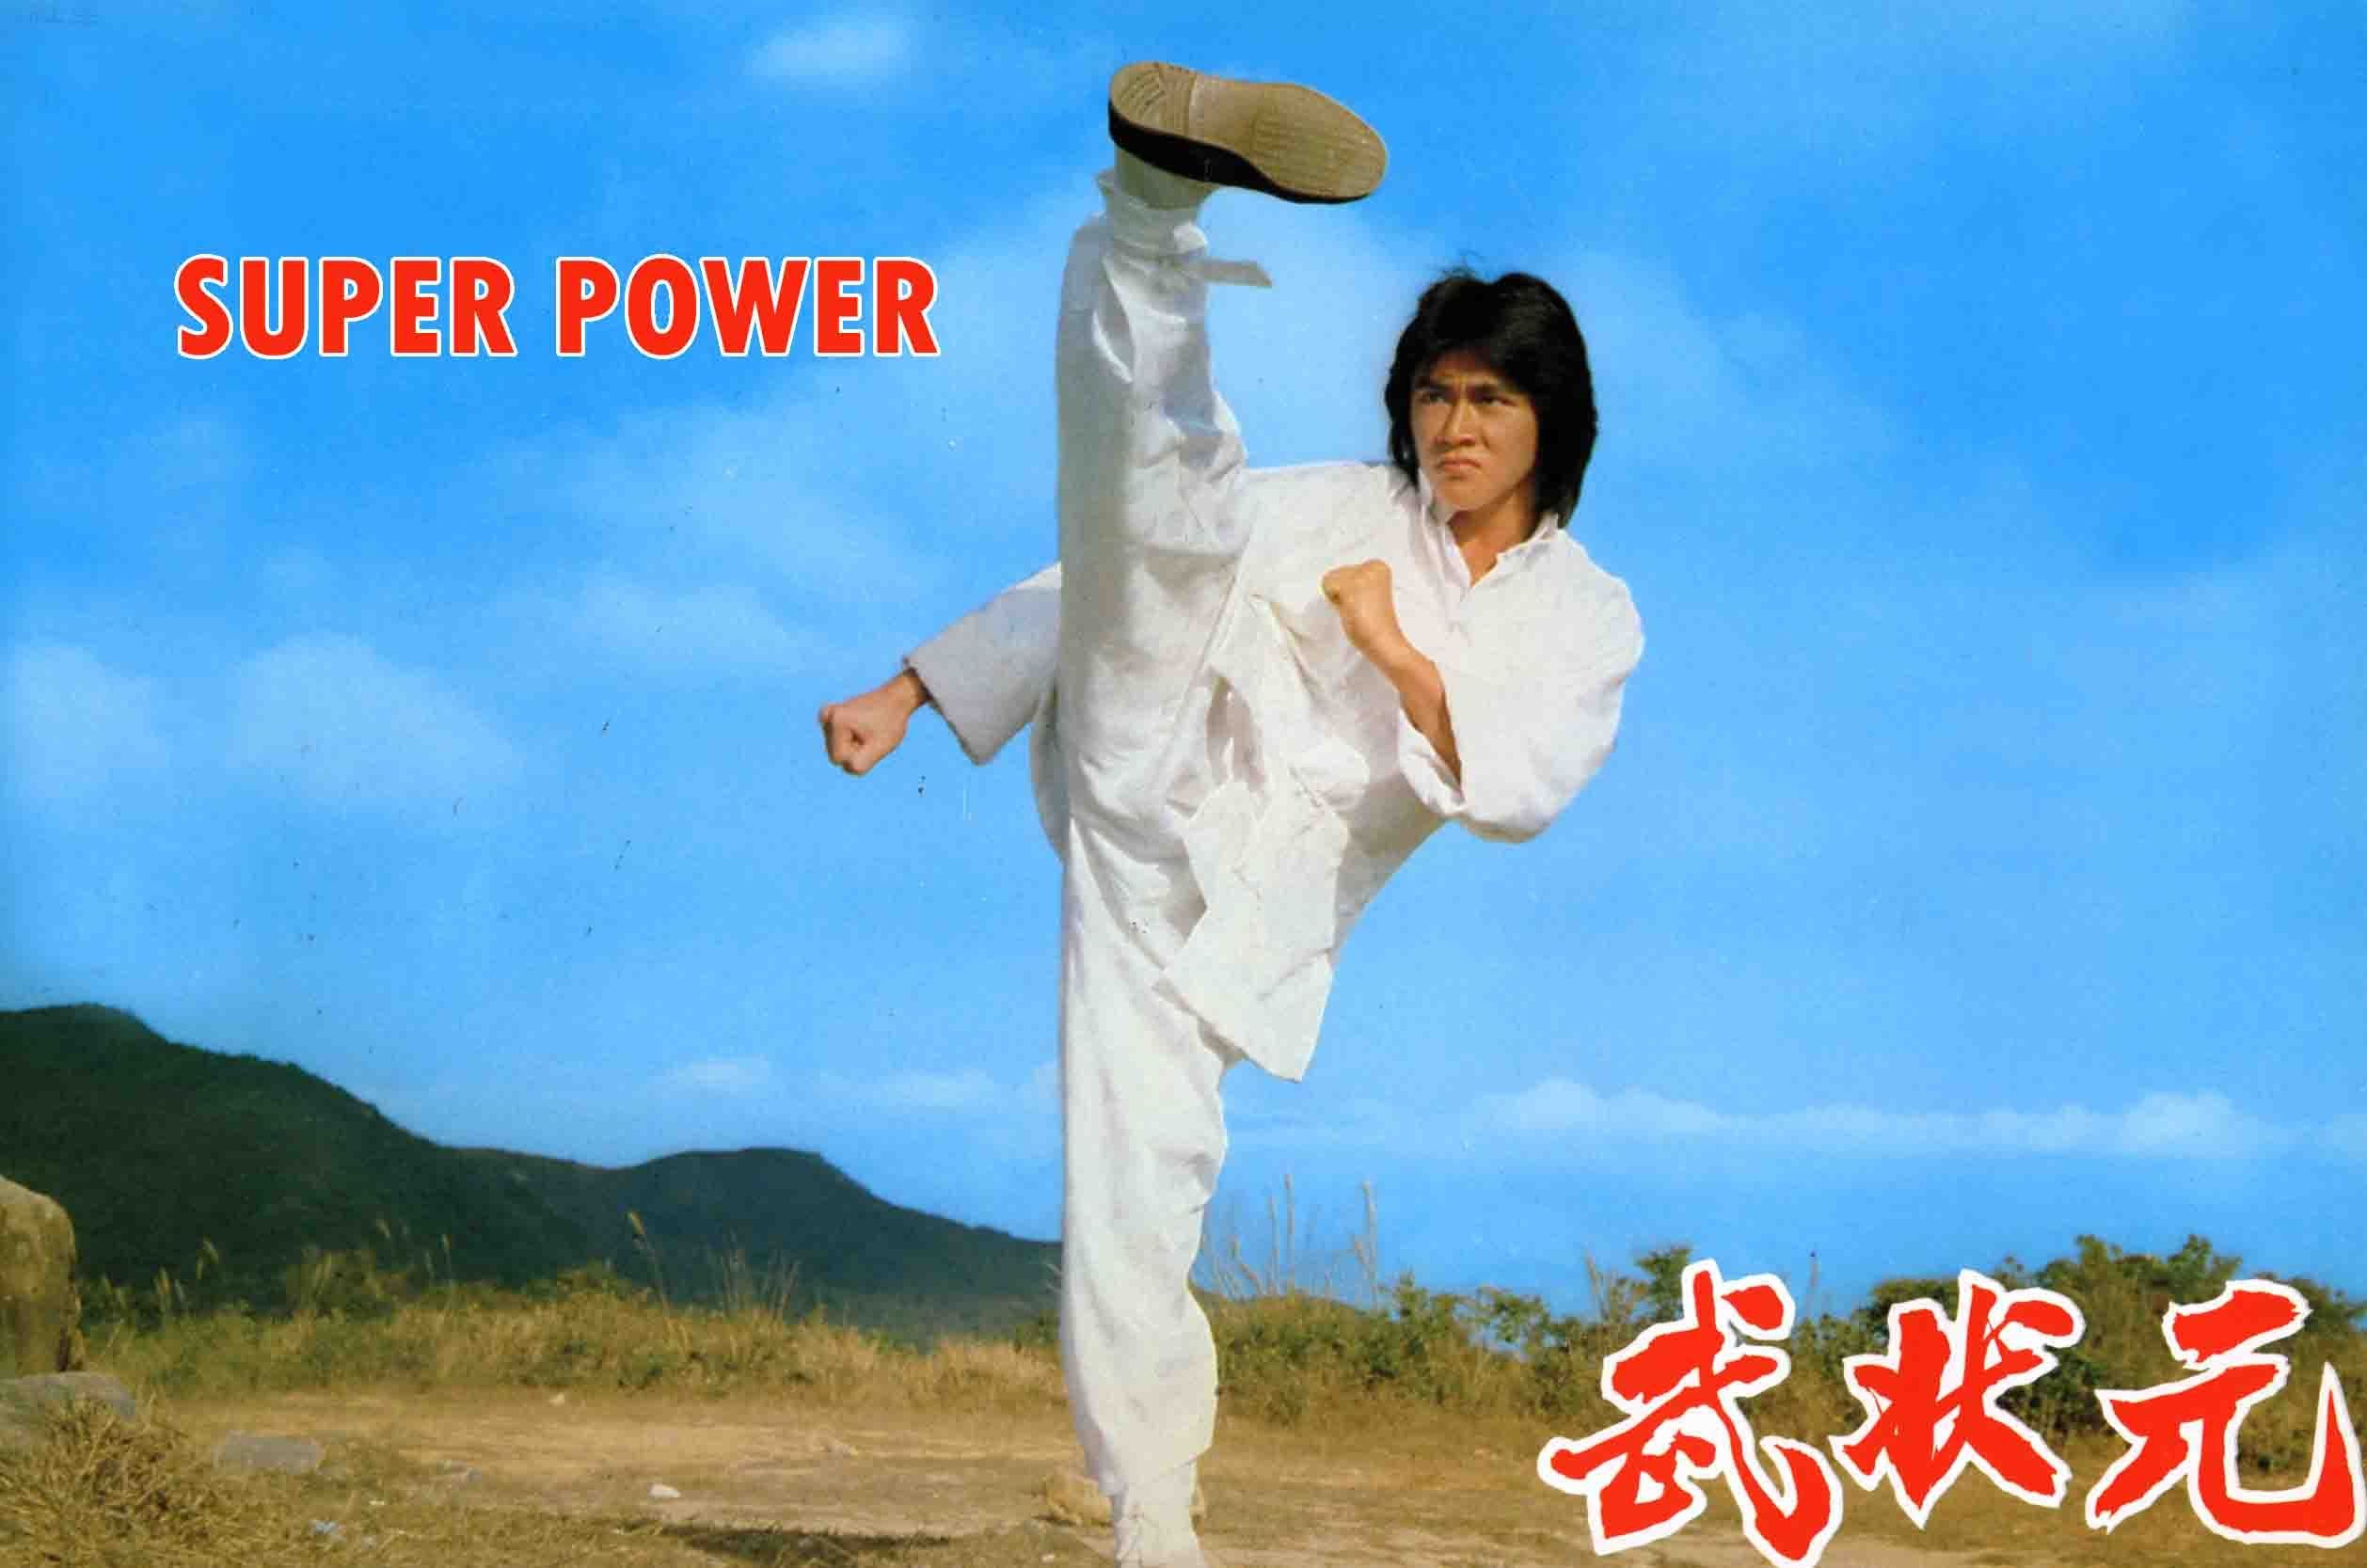 Wu Tang Collection BILLY CHONG SUPER POWER Super powers